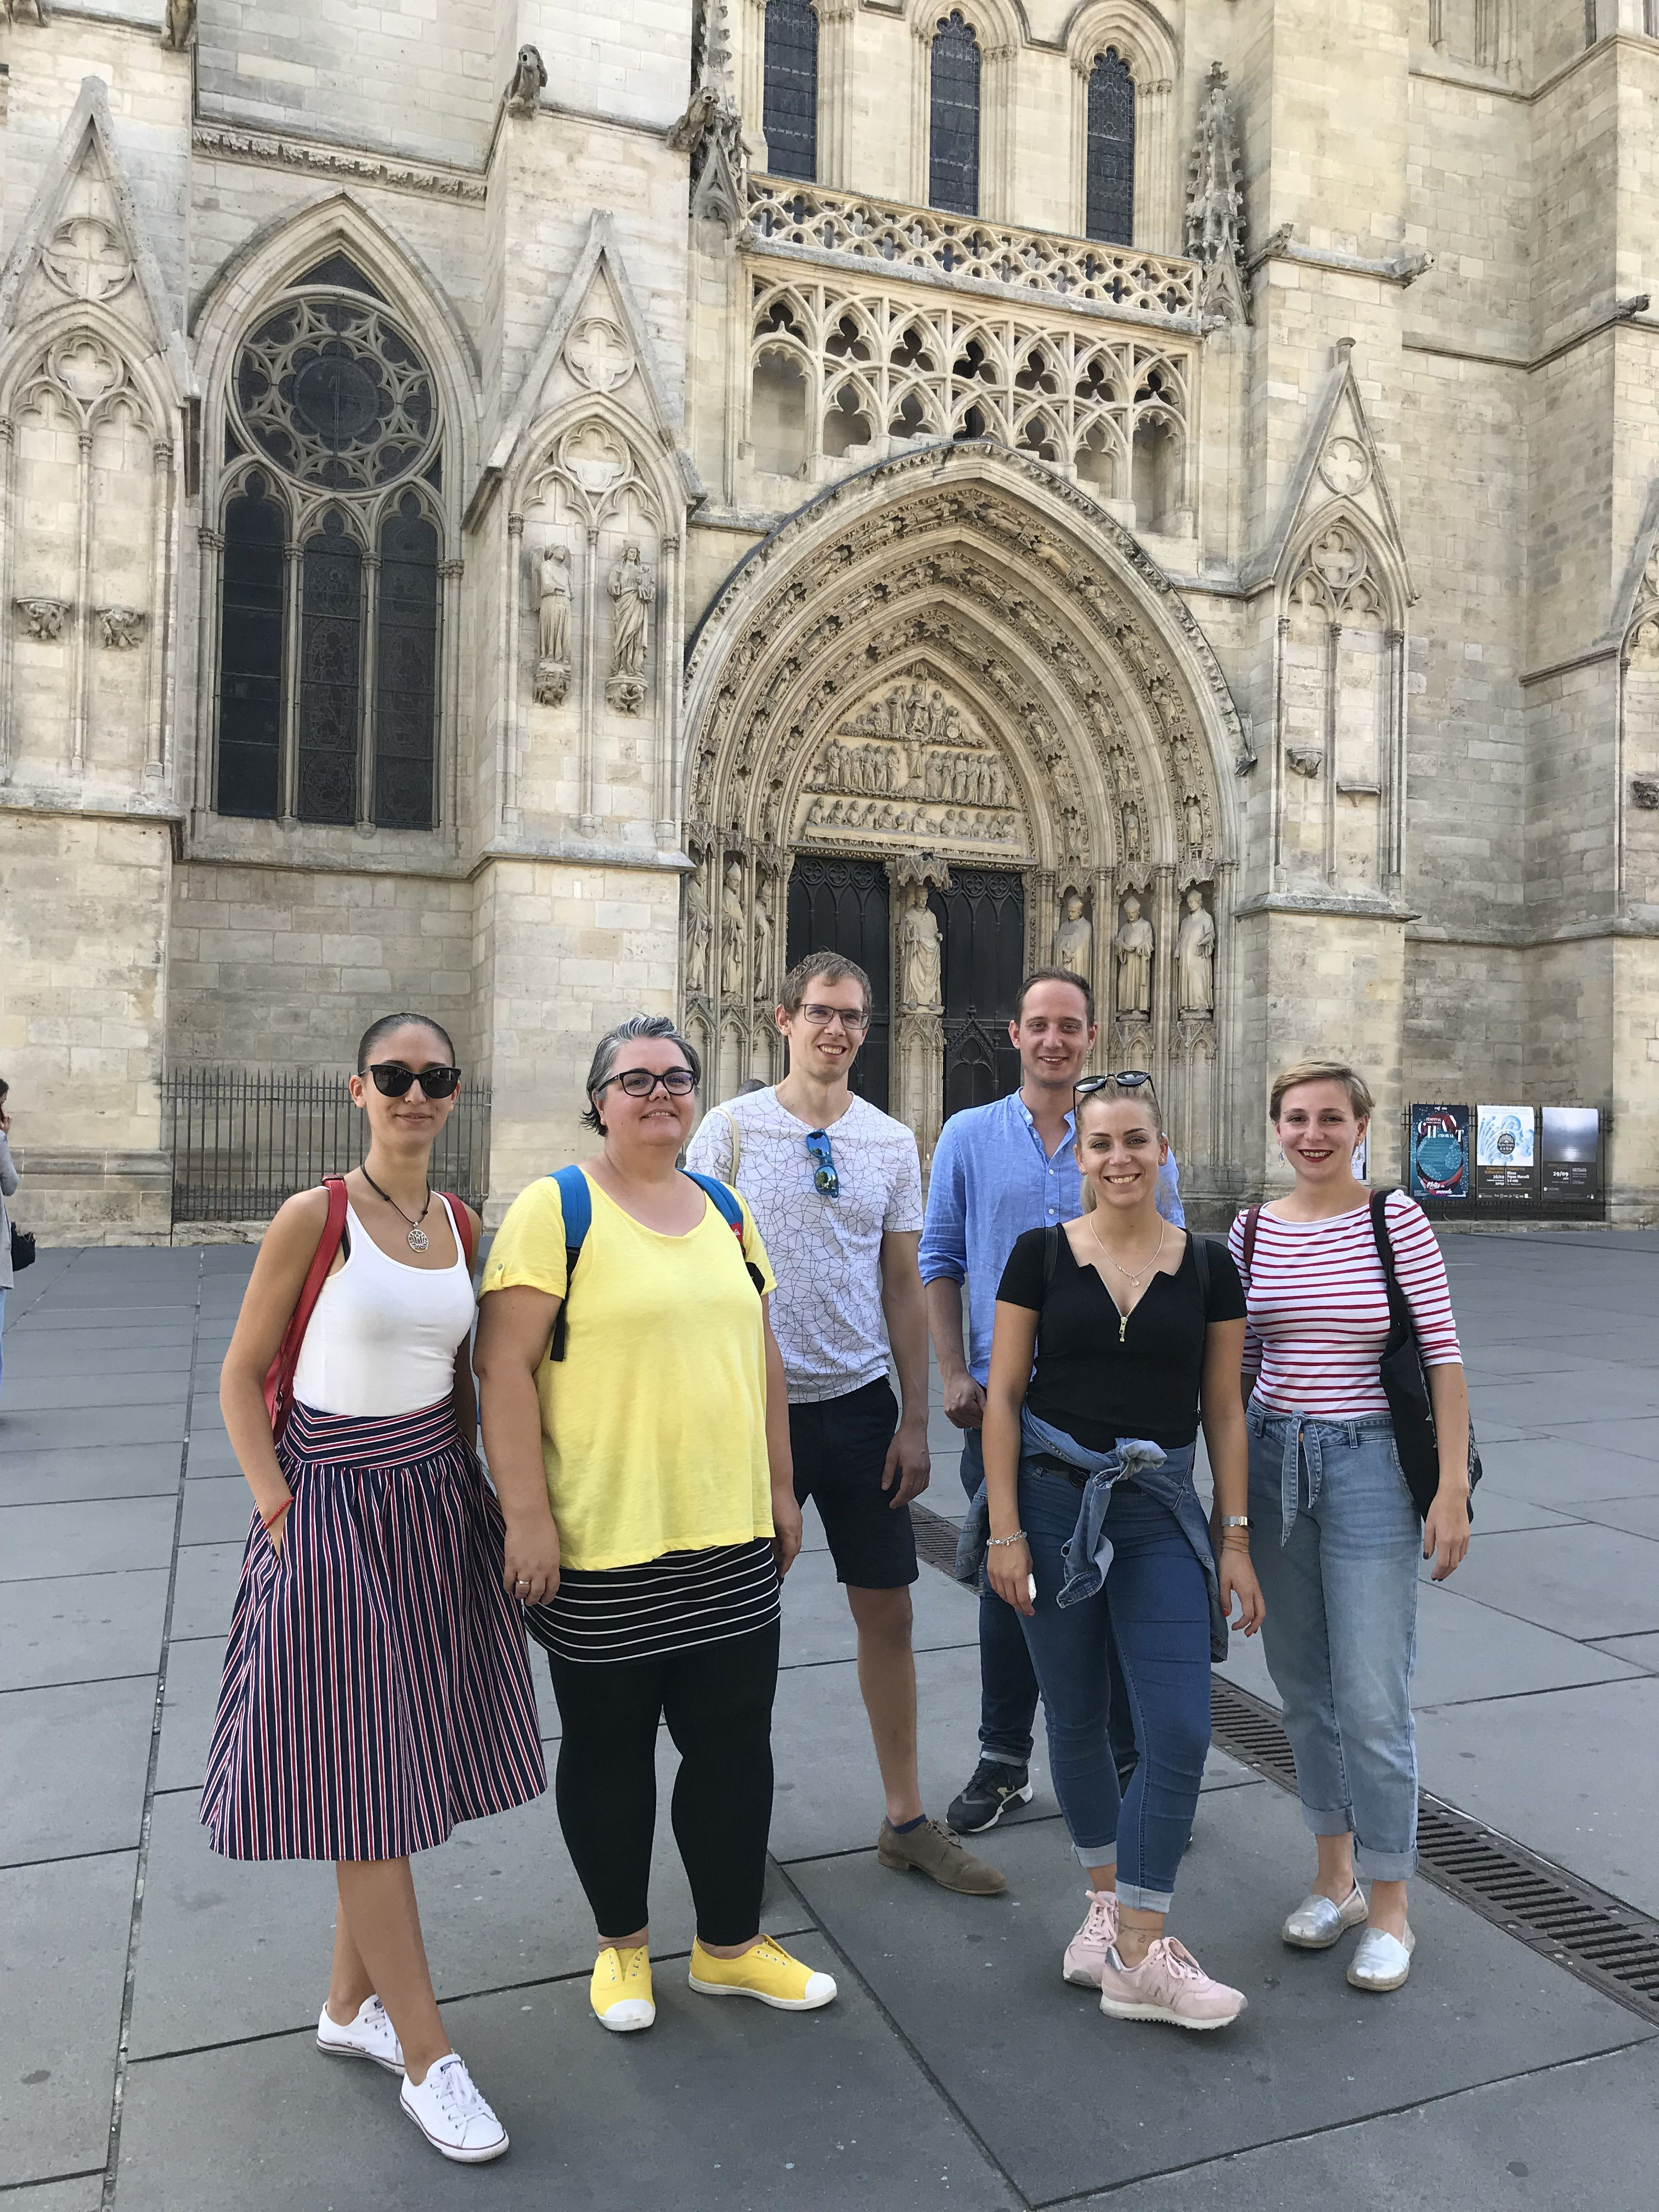 Participants in front of the Cathedral of Bordeaux